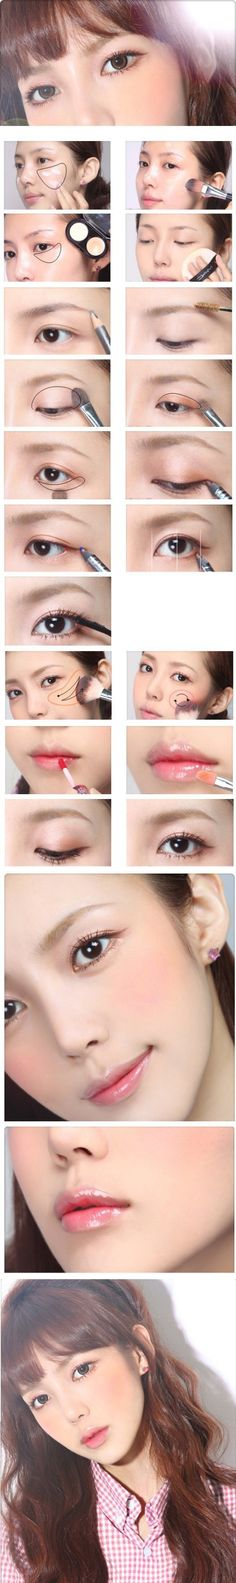 Makeup pictorial - #Korean #Ulzzang #makeup #pictorial